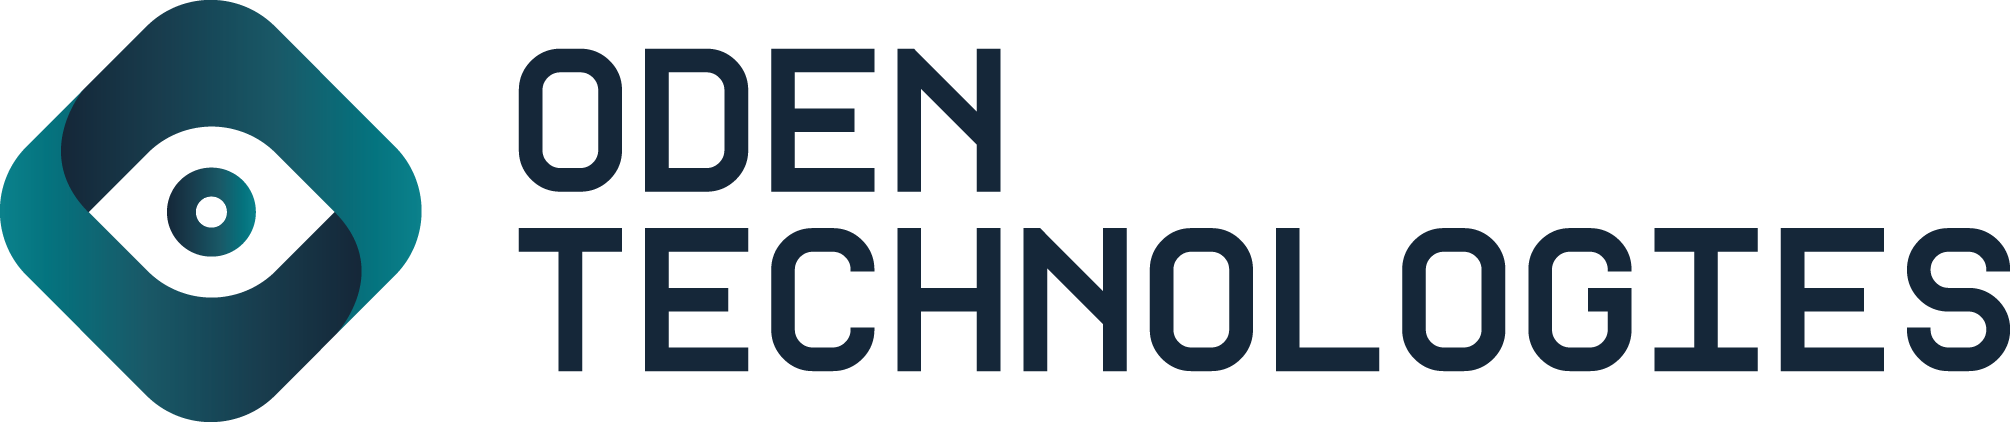 CRO | Oden Technologies